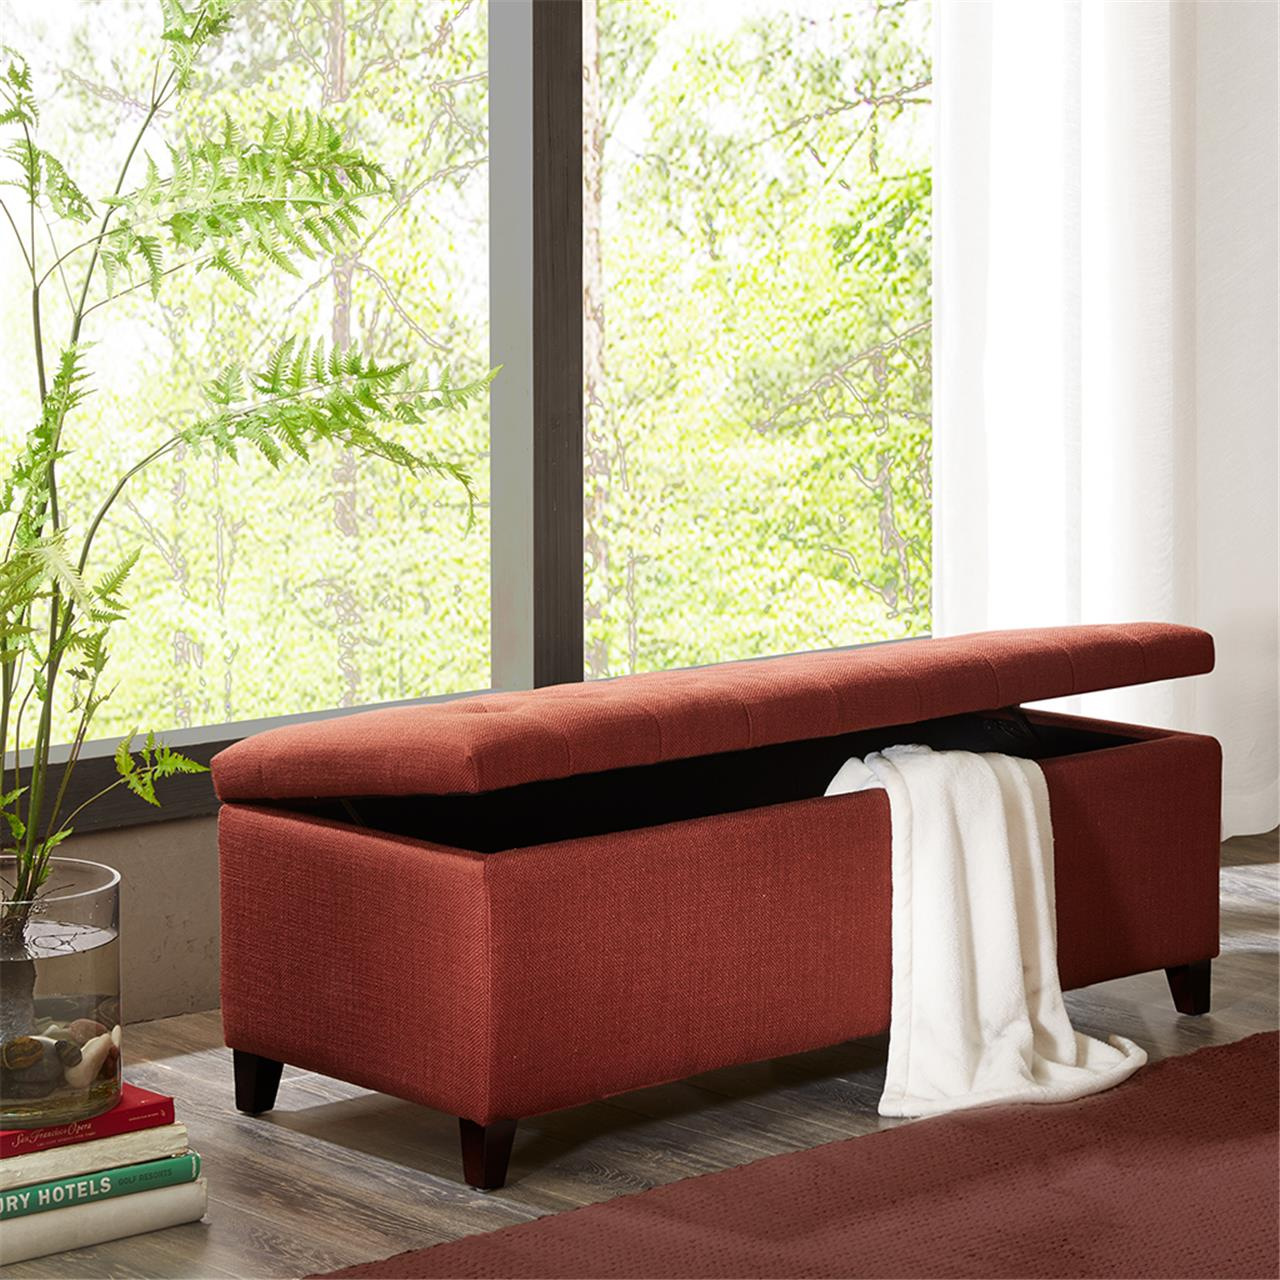 Madison Park - Shandra Tufted Top Storage Bench - Rust Red - See below